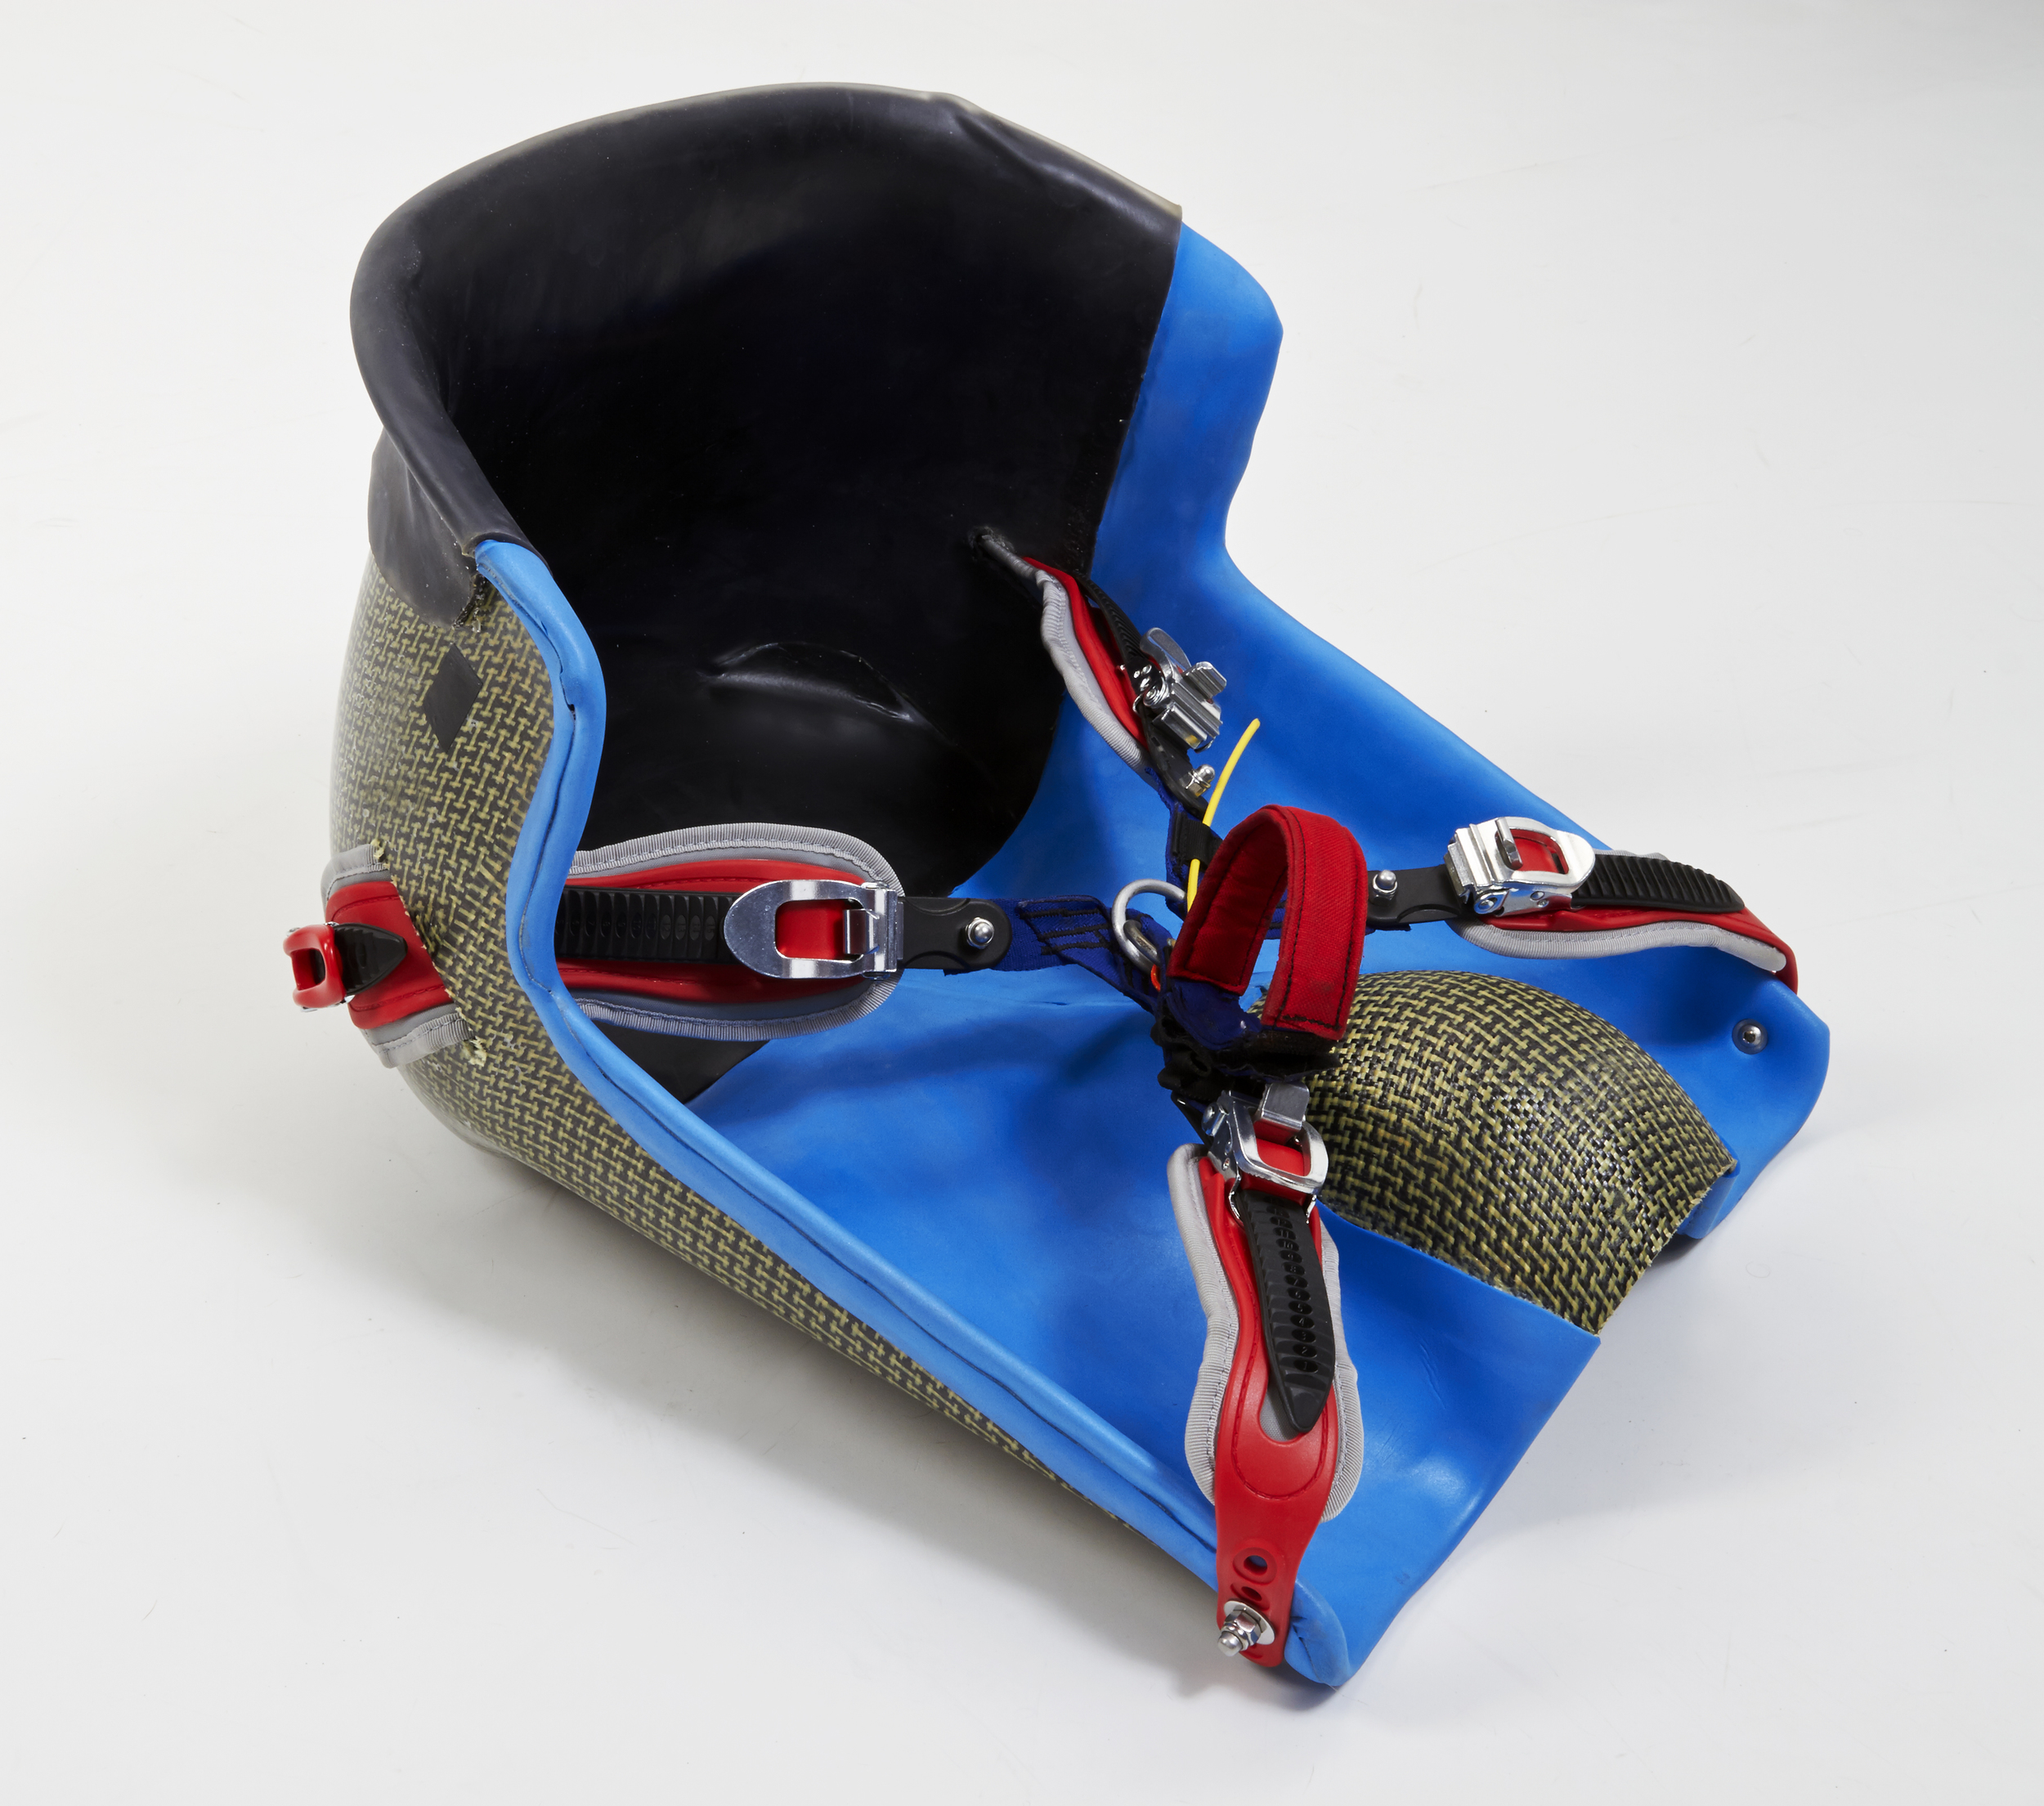 The seat is designed for the highest level of stability and the most accurate control. The fastening system provides absolute connection to the seat which makes the heeling (as the most important part of wild water maneuvering) easy to control.